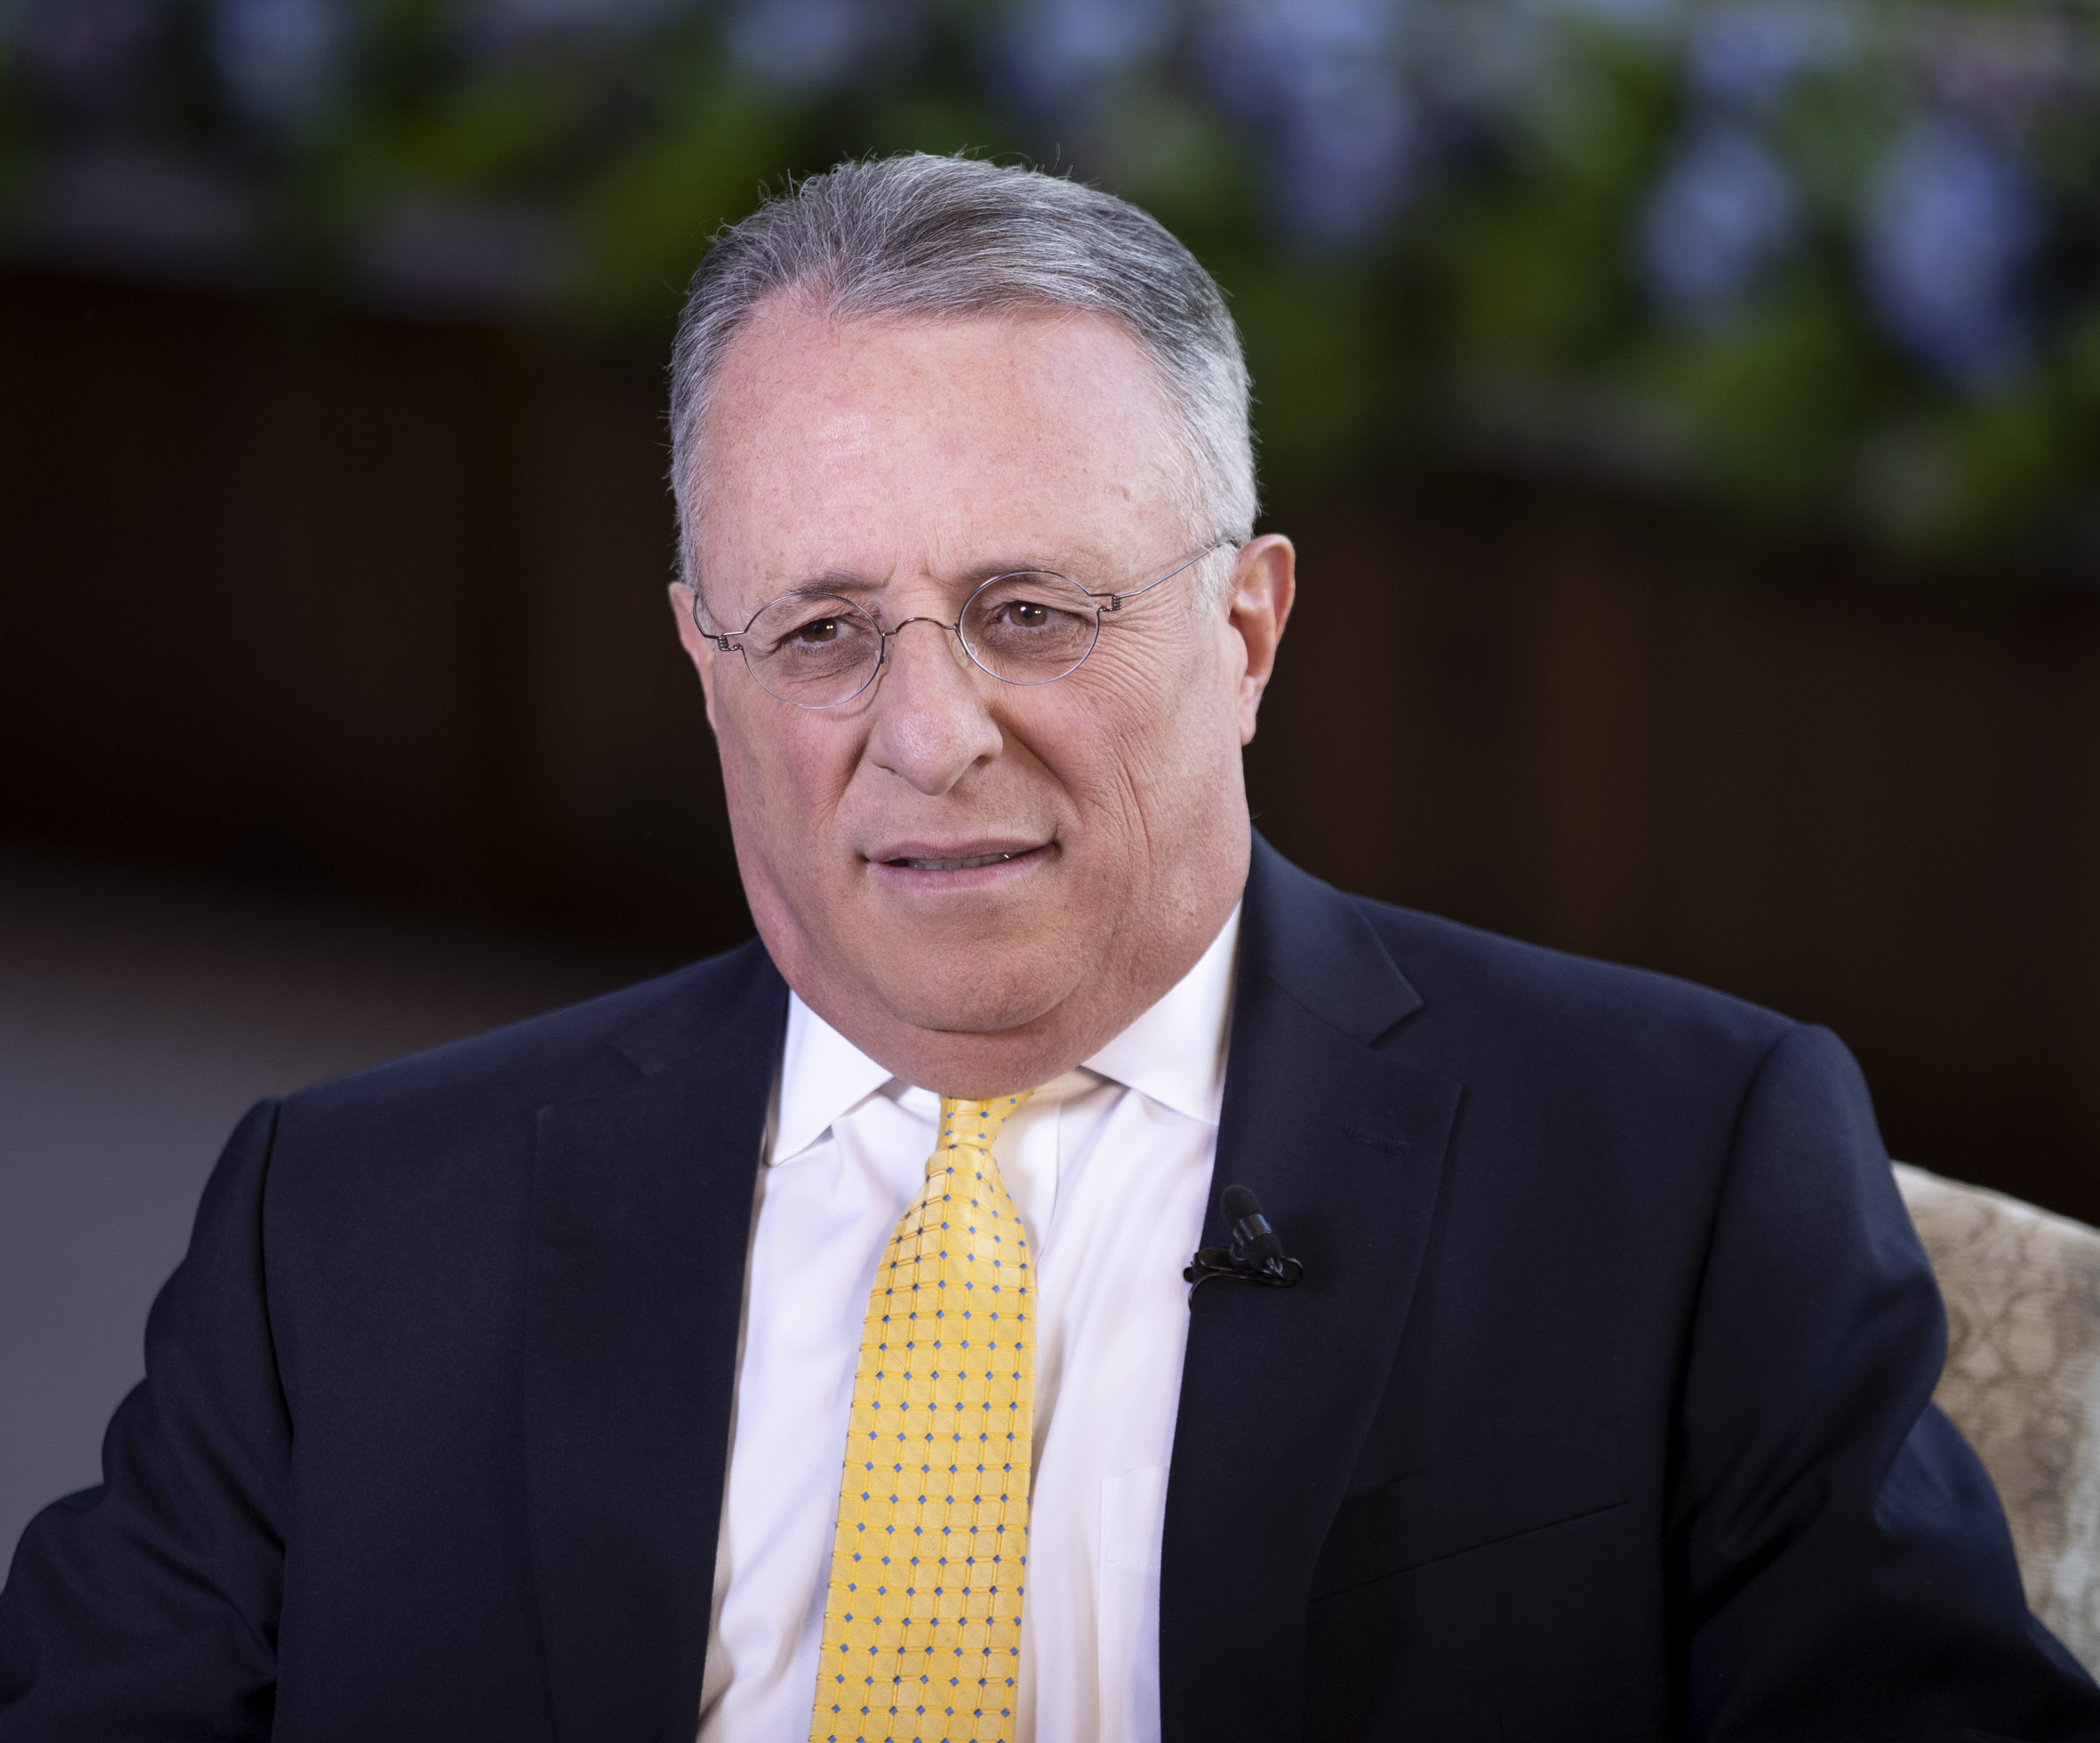 Elder Ulisses Soares answers questions during an interview in the North Visitors Center on Temple Square in Salt Lake City on Thursday, June 28, 2018.